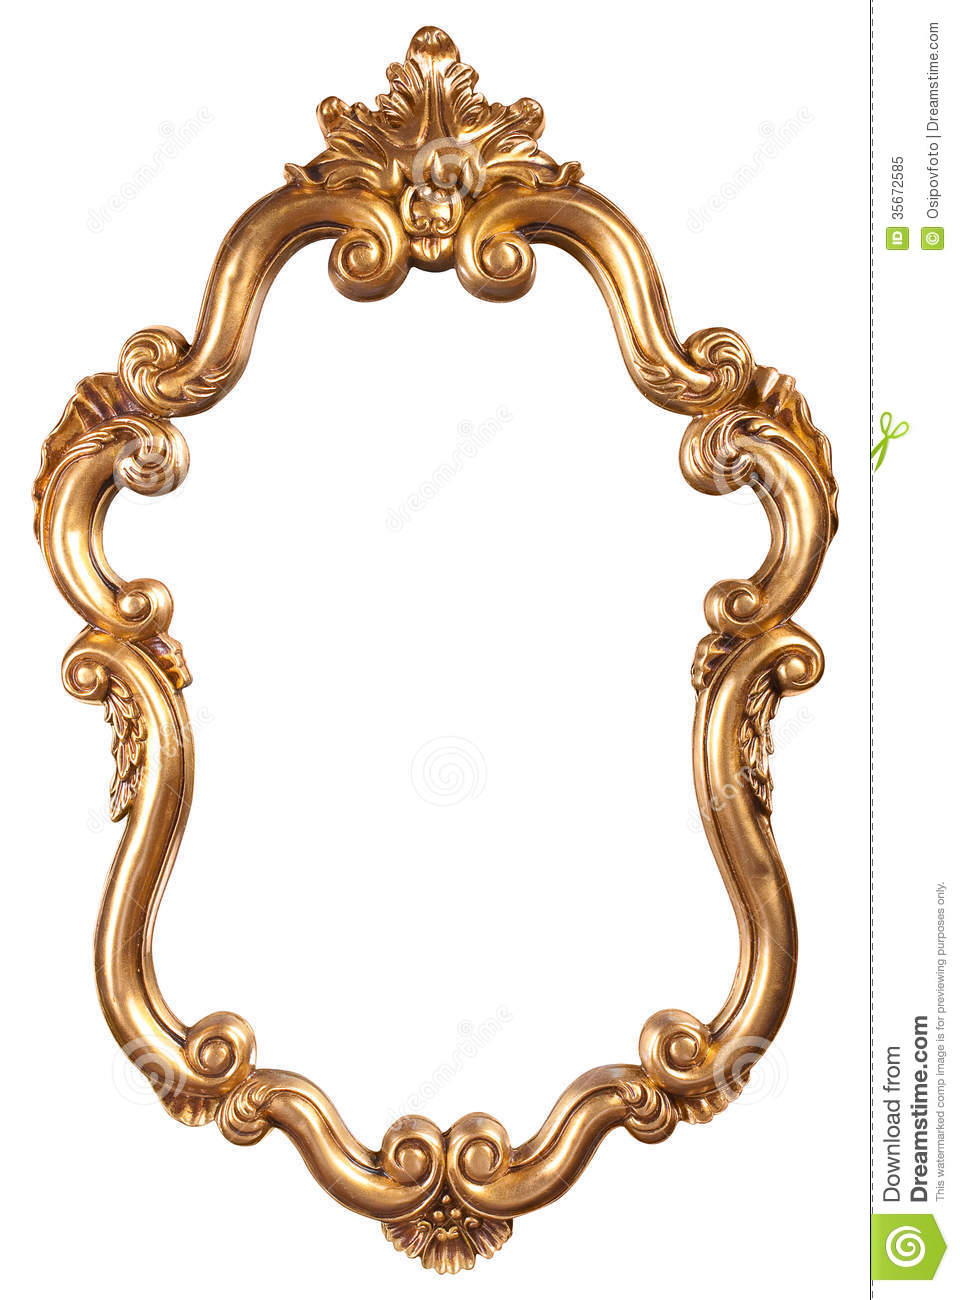 Gold Scroll Frame Clip Art | Clipart Panda - Free Clipart Images